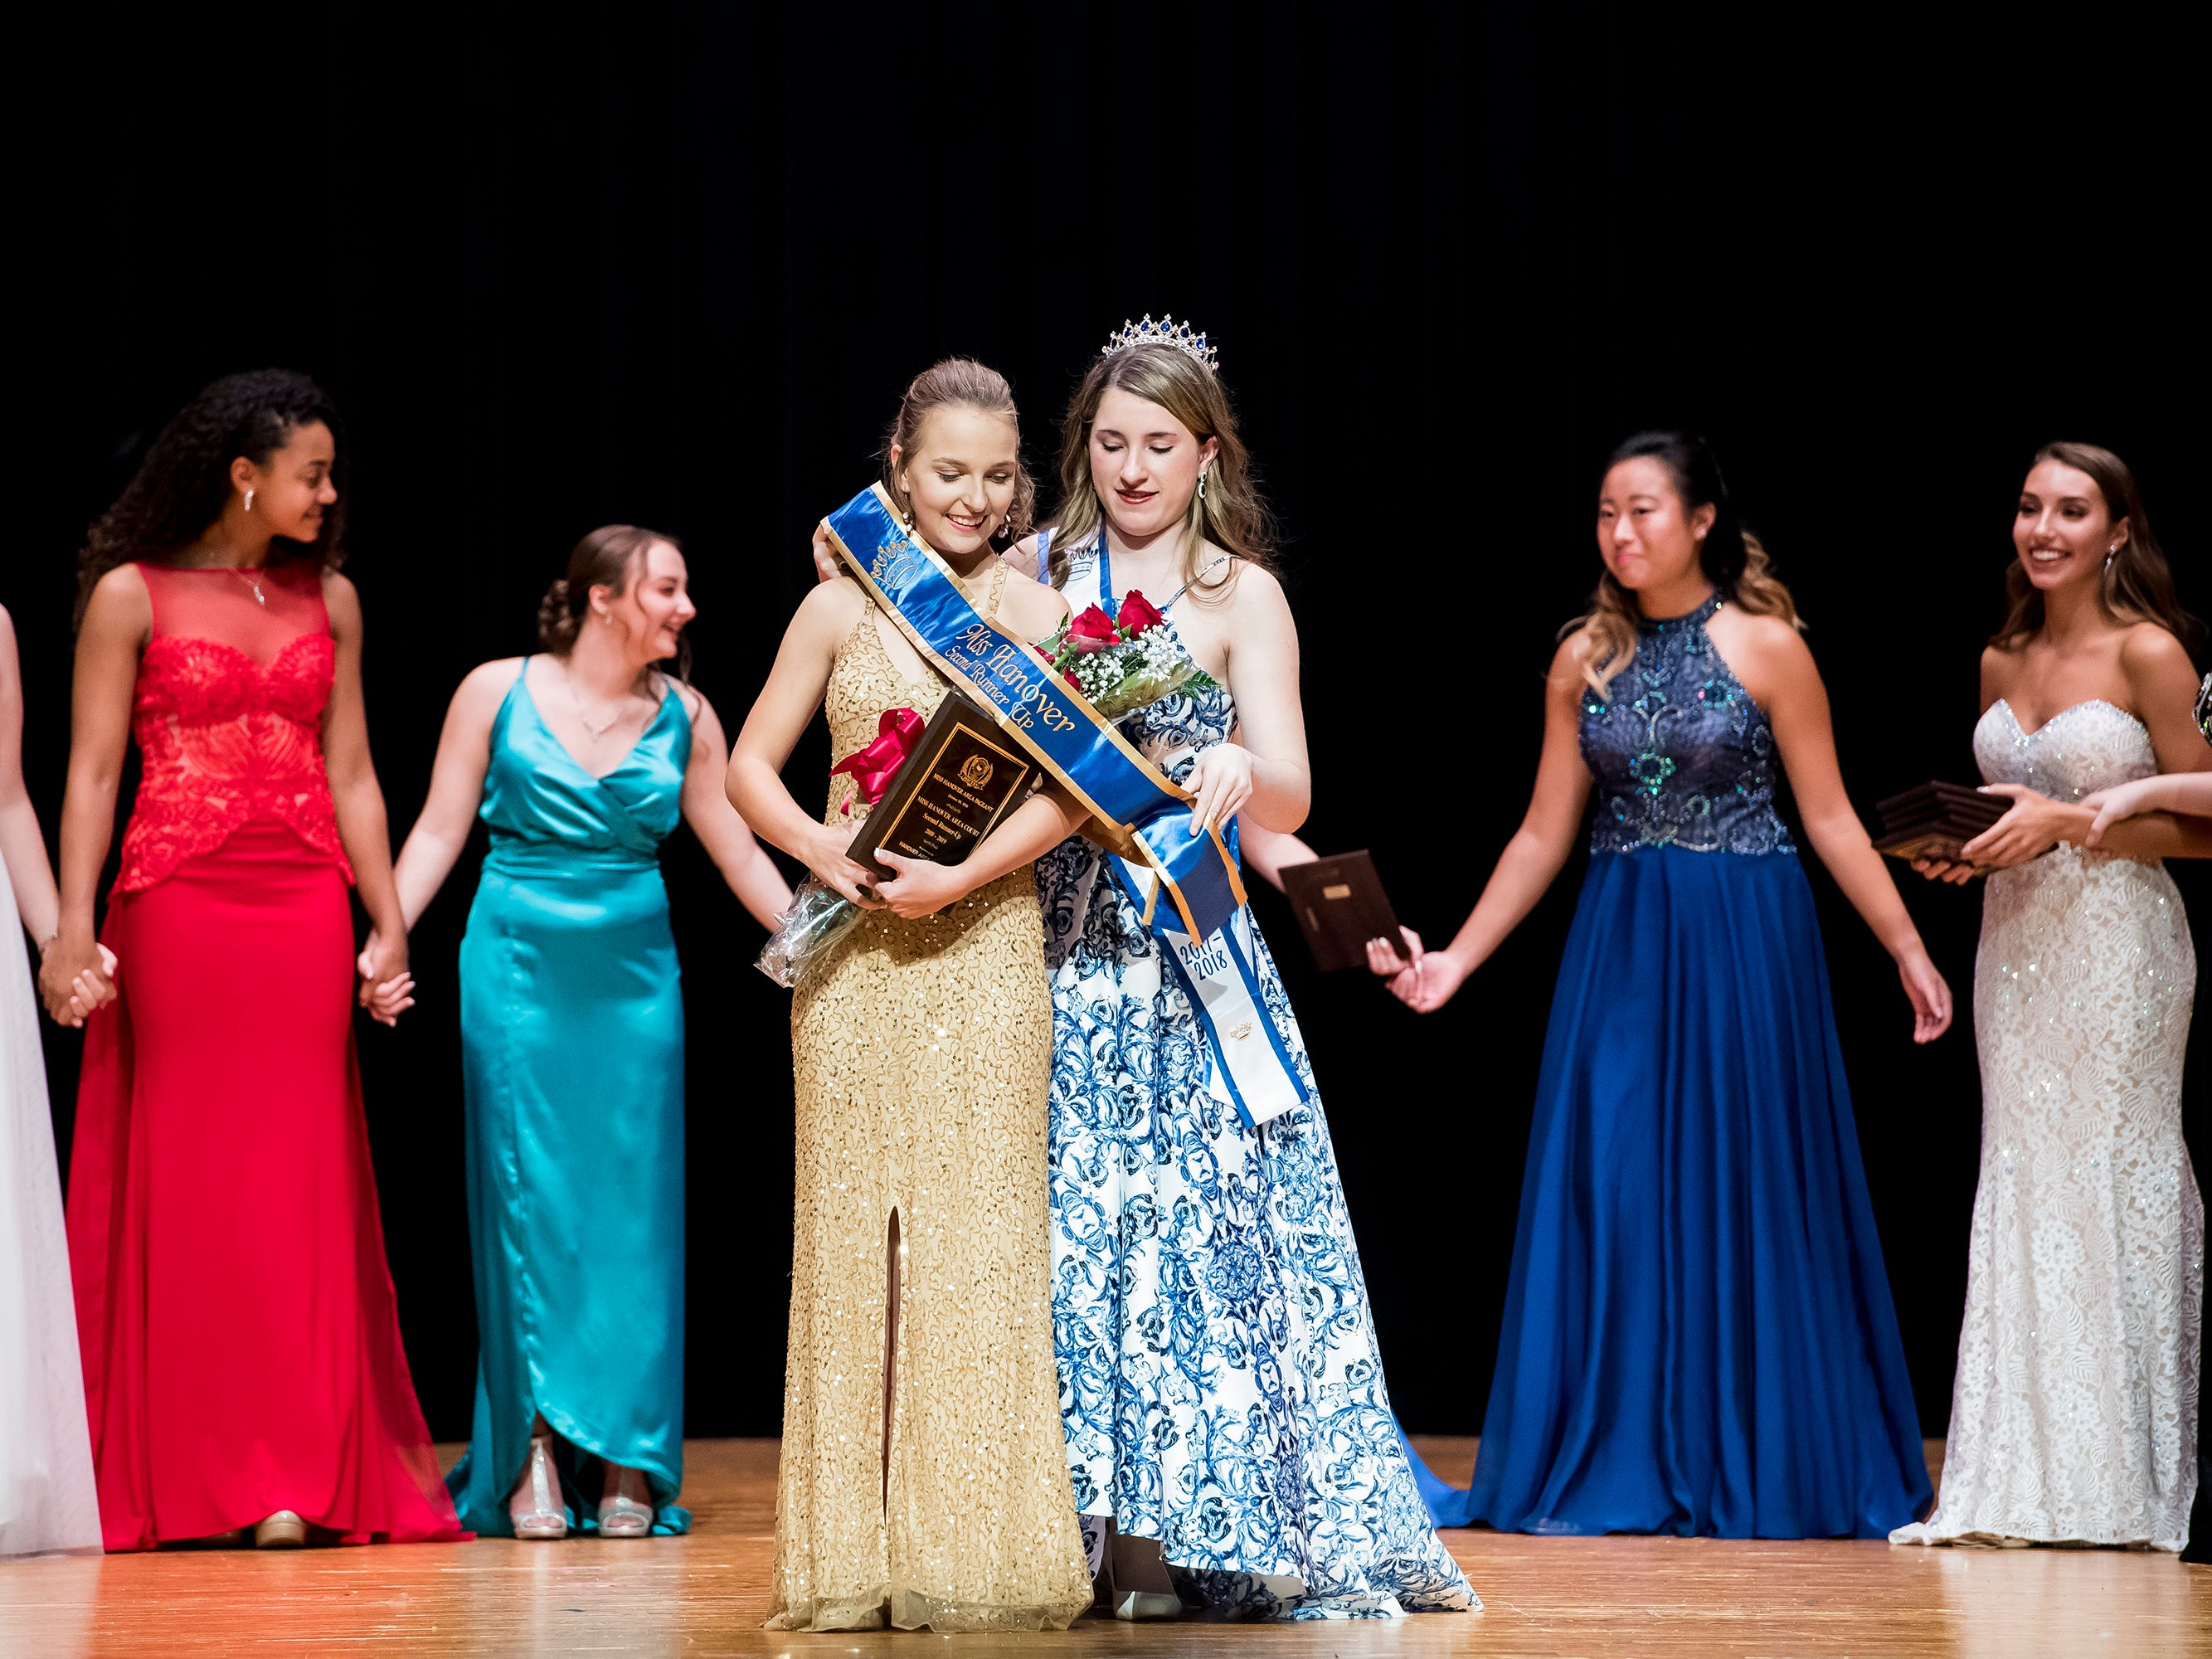 Littlestown's Lindsay Boritz is presented with a sash after being named the second runner-up at the 50th Miss Hanover Area pageant on Monday, October 22, 2018.